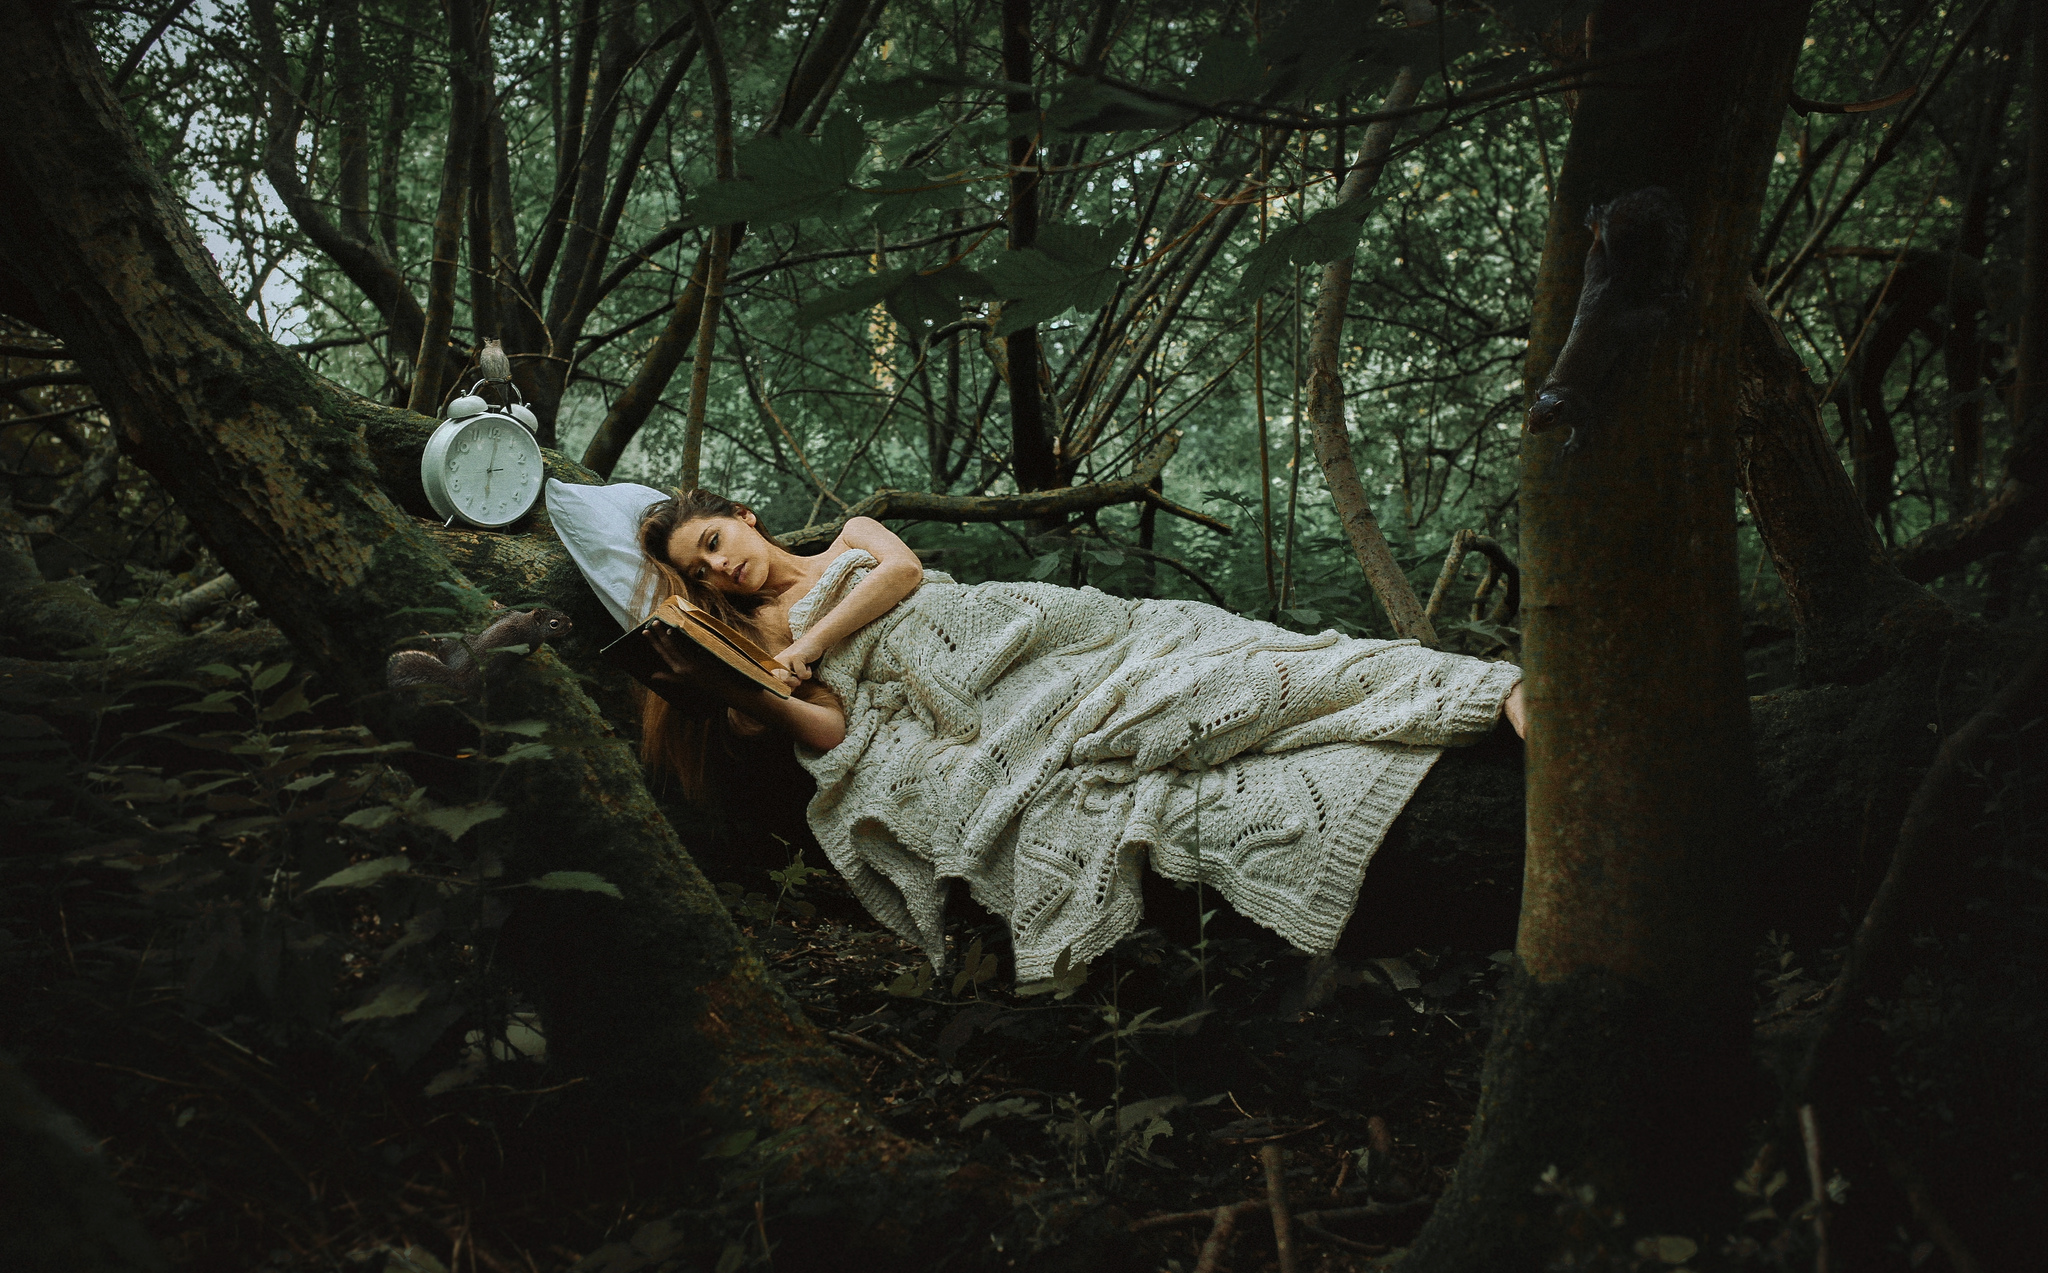 Girl In Rain Wallpaper For Facebook Napping In The Forest Hd Wallpaper Background Image